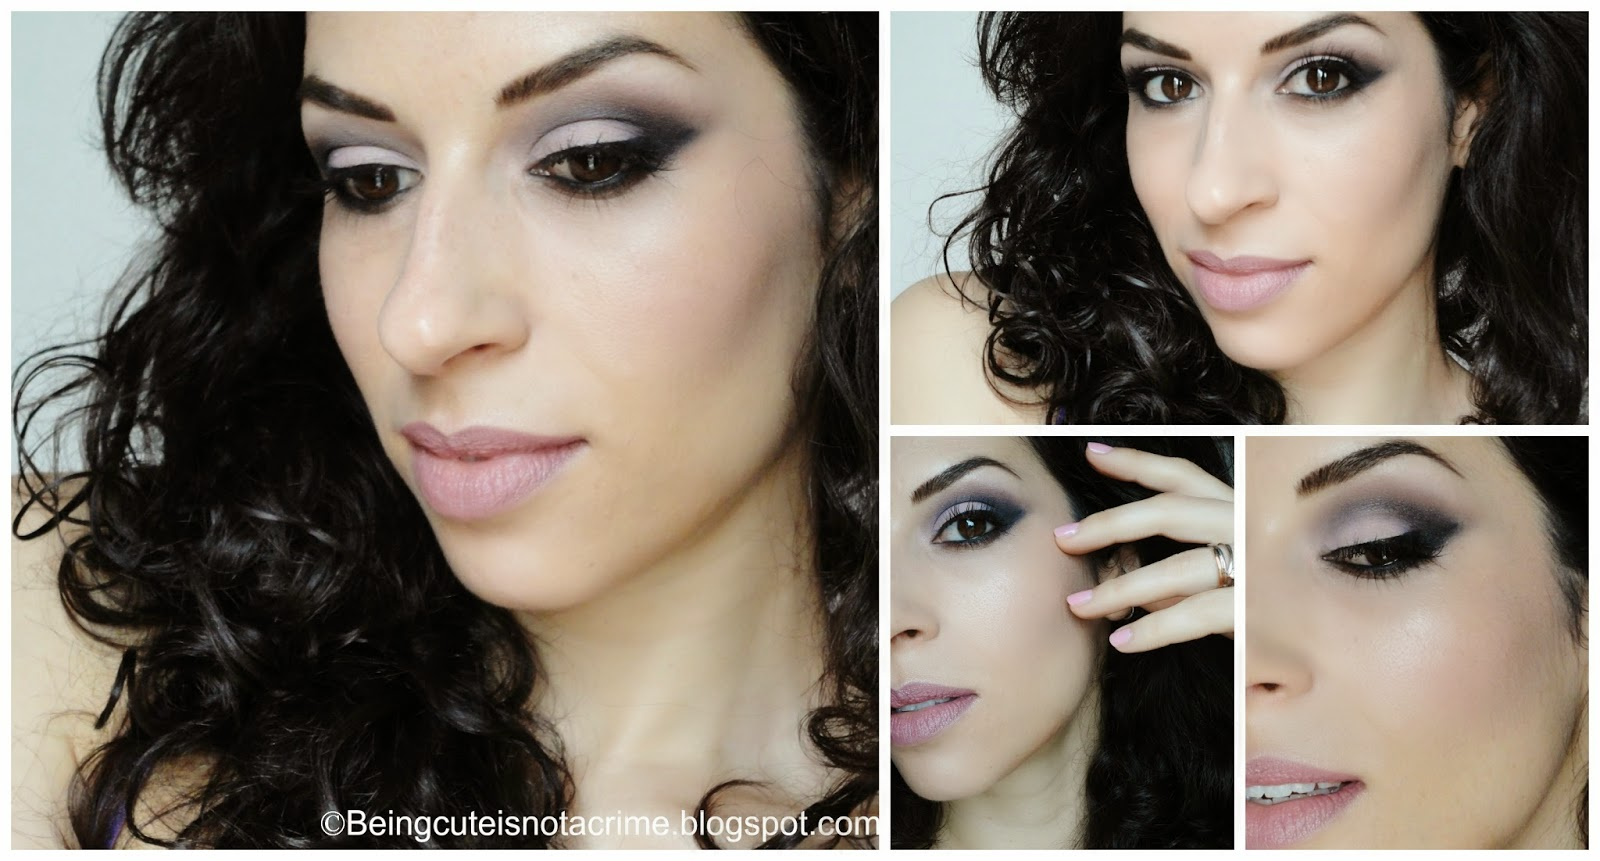 http://beingcuteisnotacrime.blogspot.nl/2014/07/make-up-serie-matchy-matchy-7-pale.html